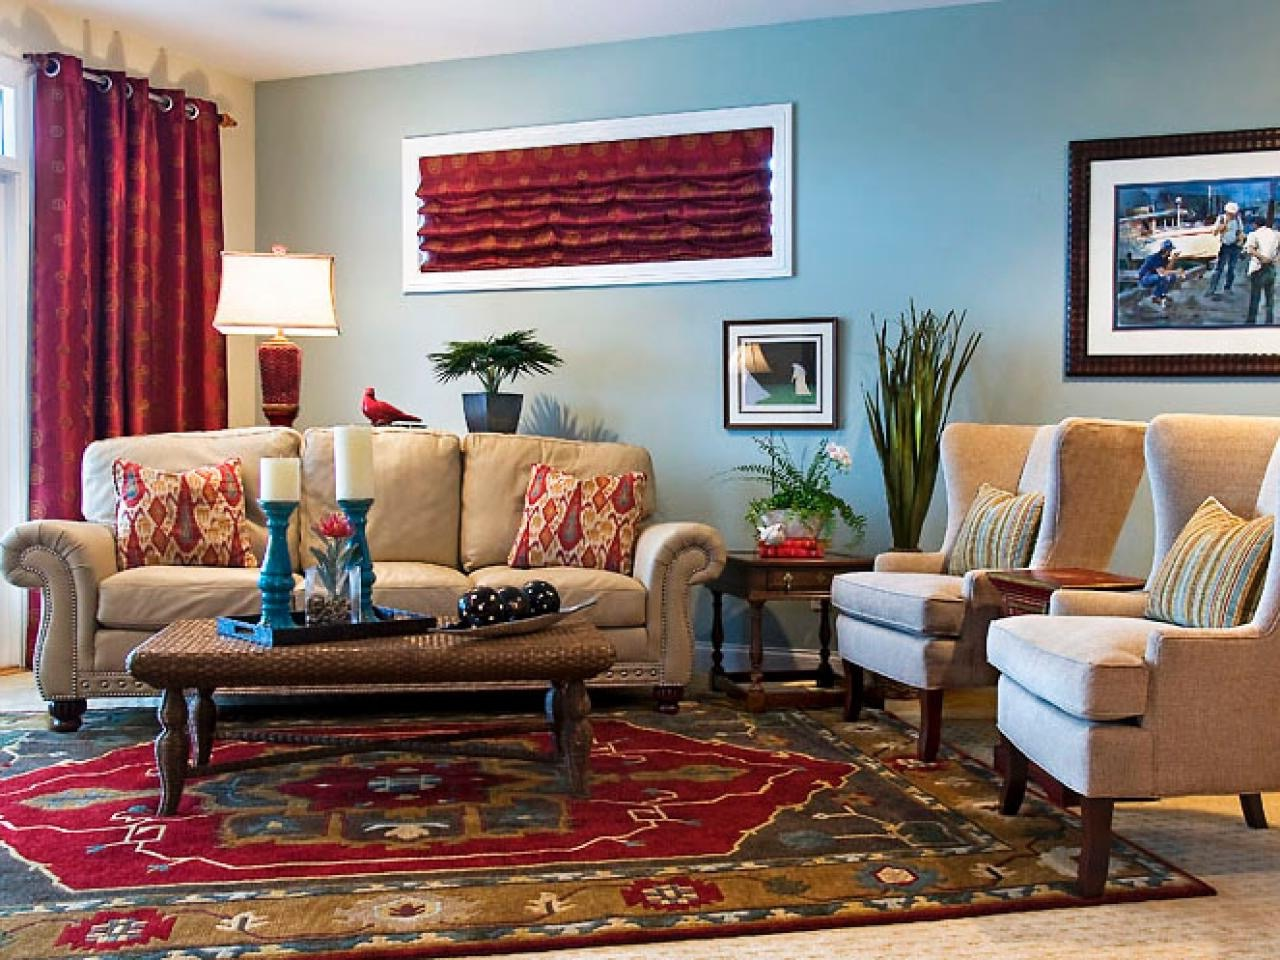 middle eastern living room 15 middle eastern inspired living room design ideas 18422 15460